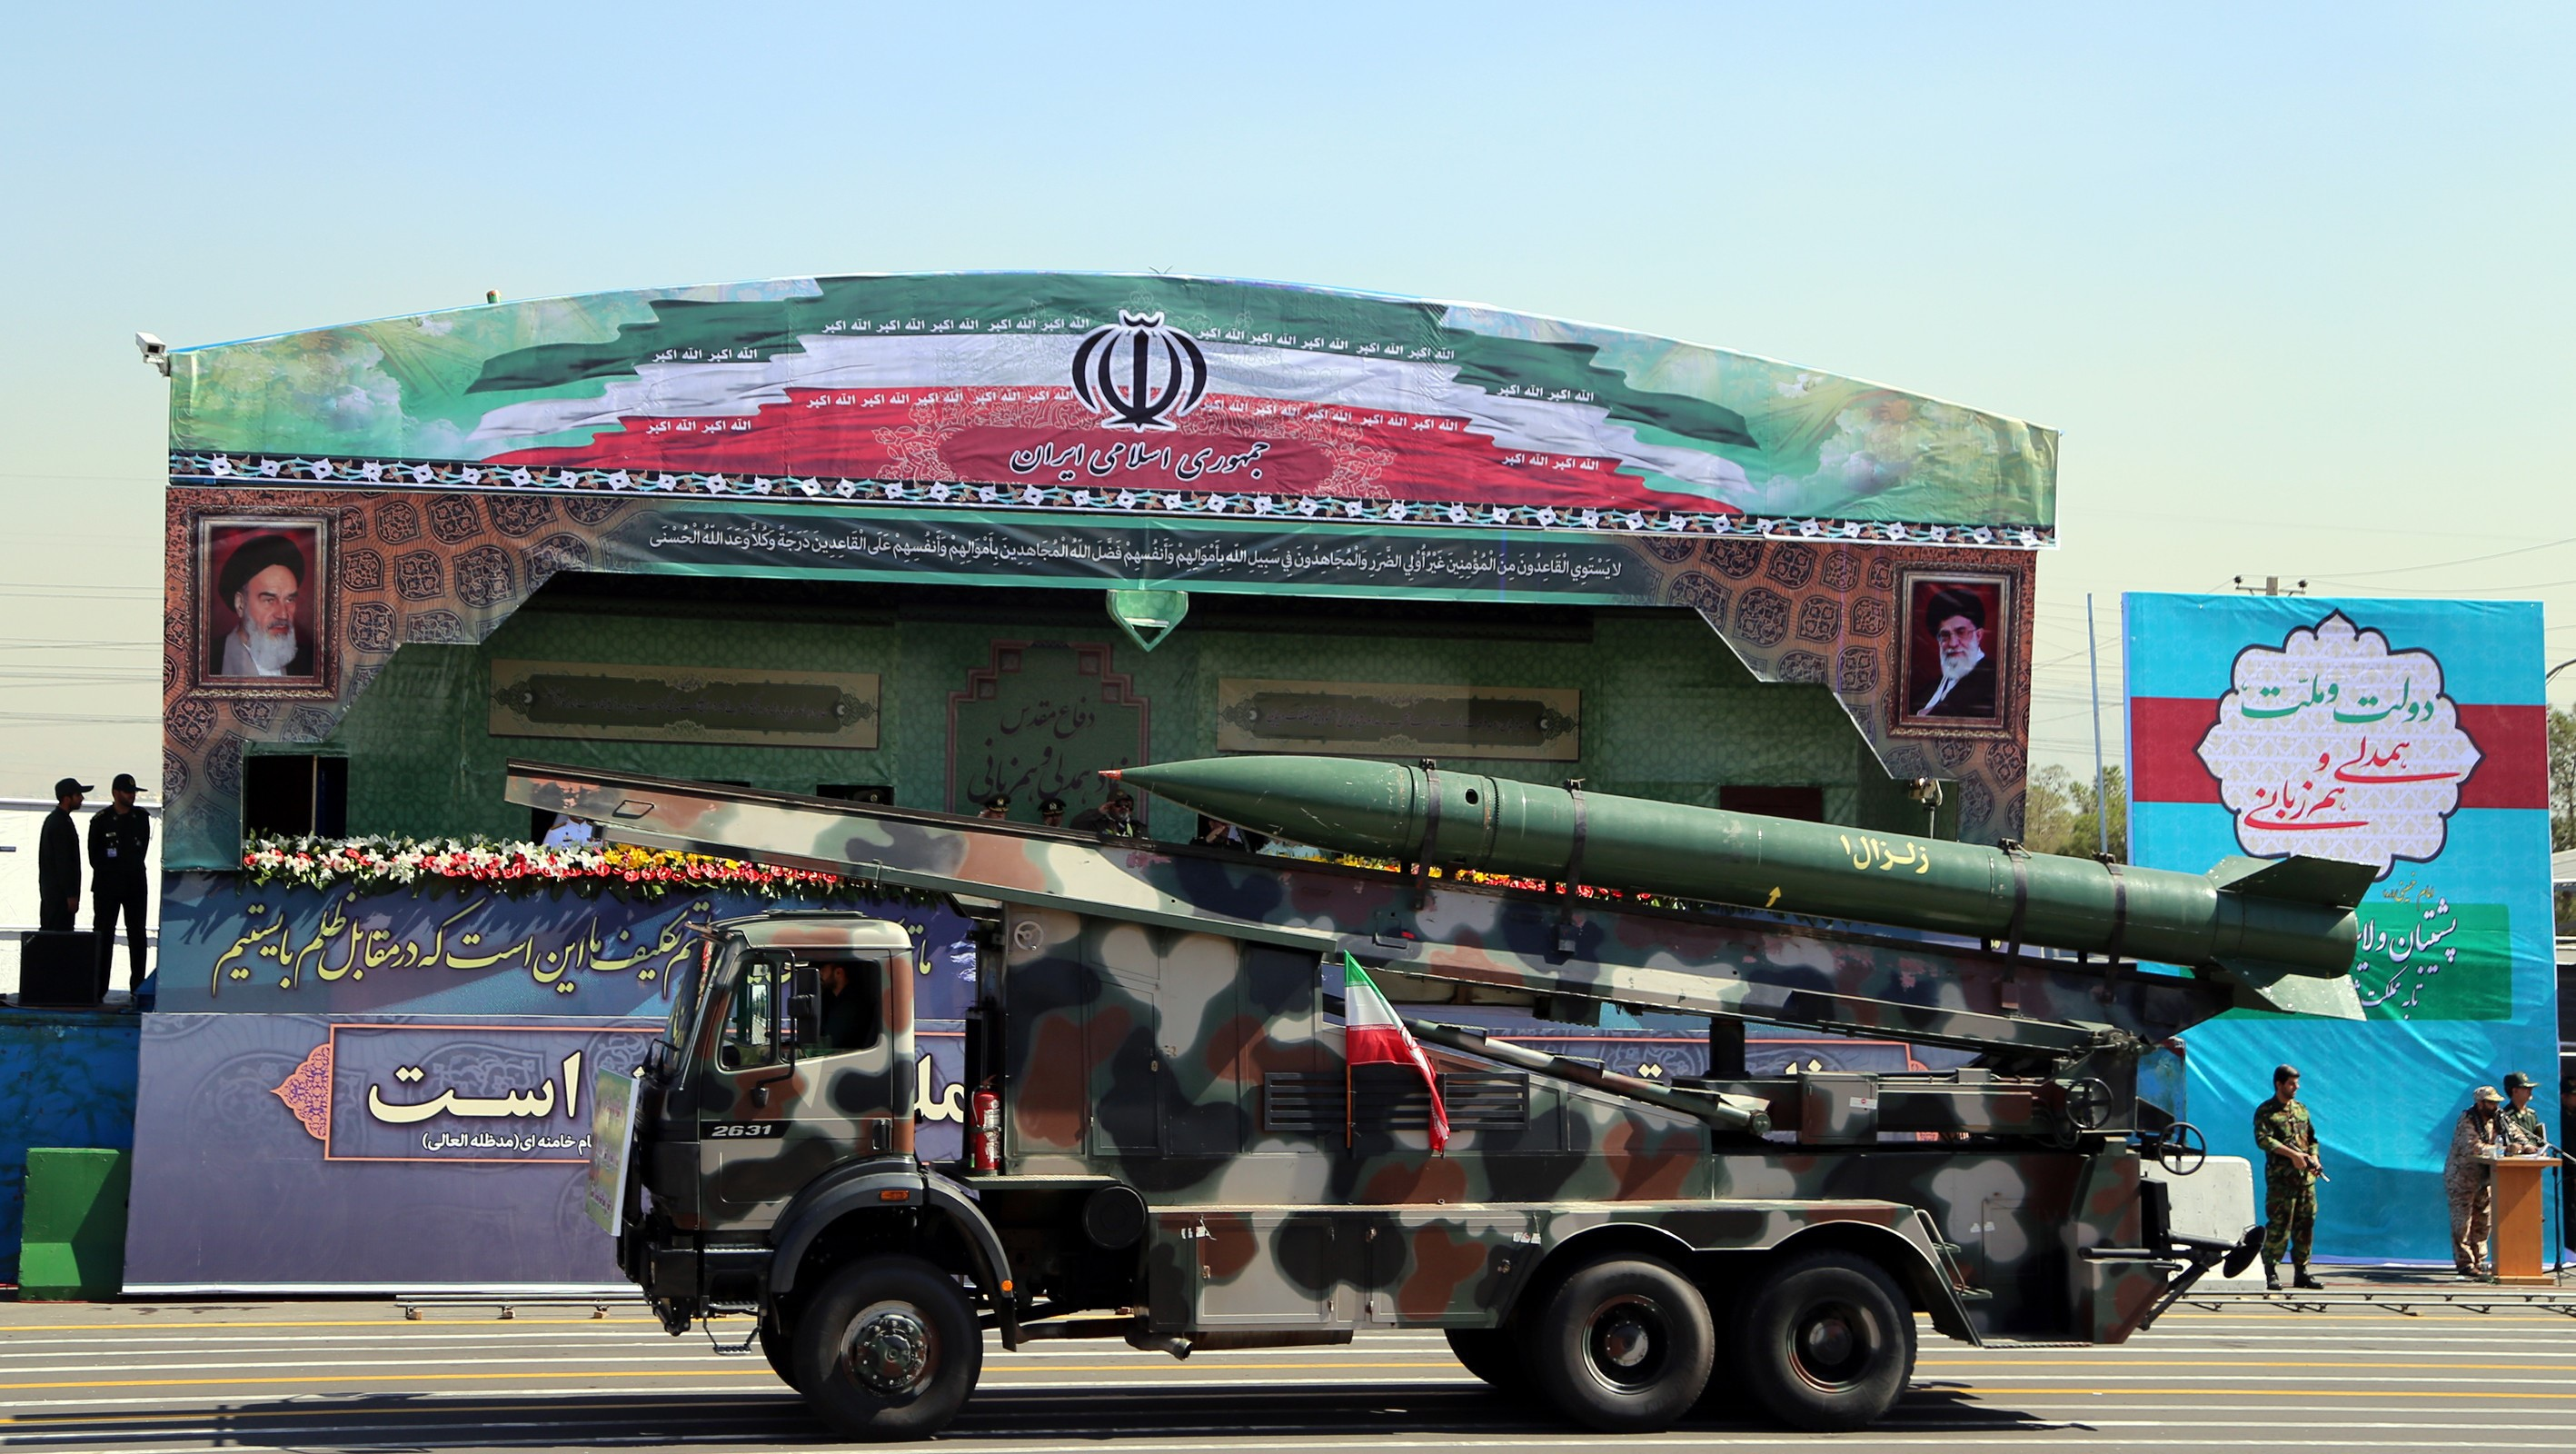 A vehicle carrying a missile system is driven past Iranian military commanders during an annual military parade, on Sept. 22, 2015, in the capital Tehran